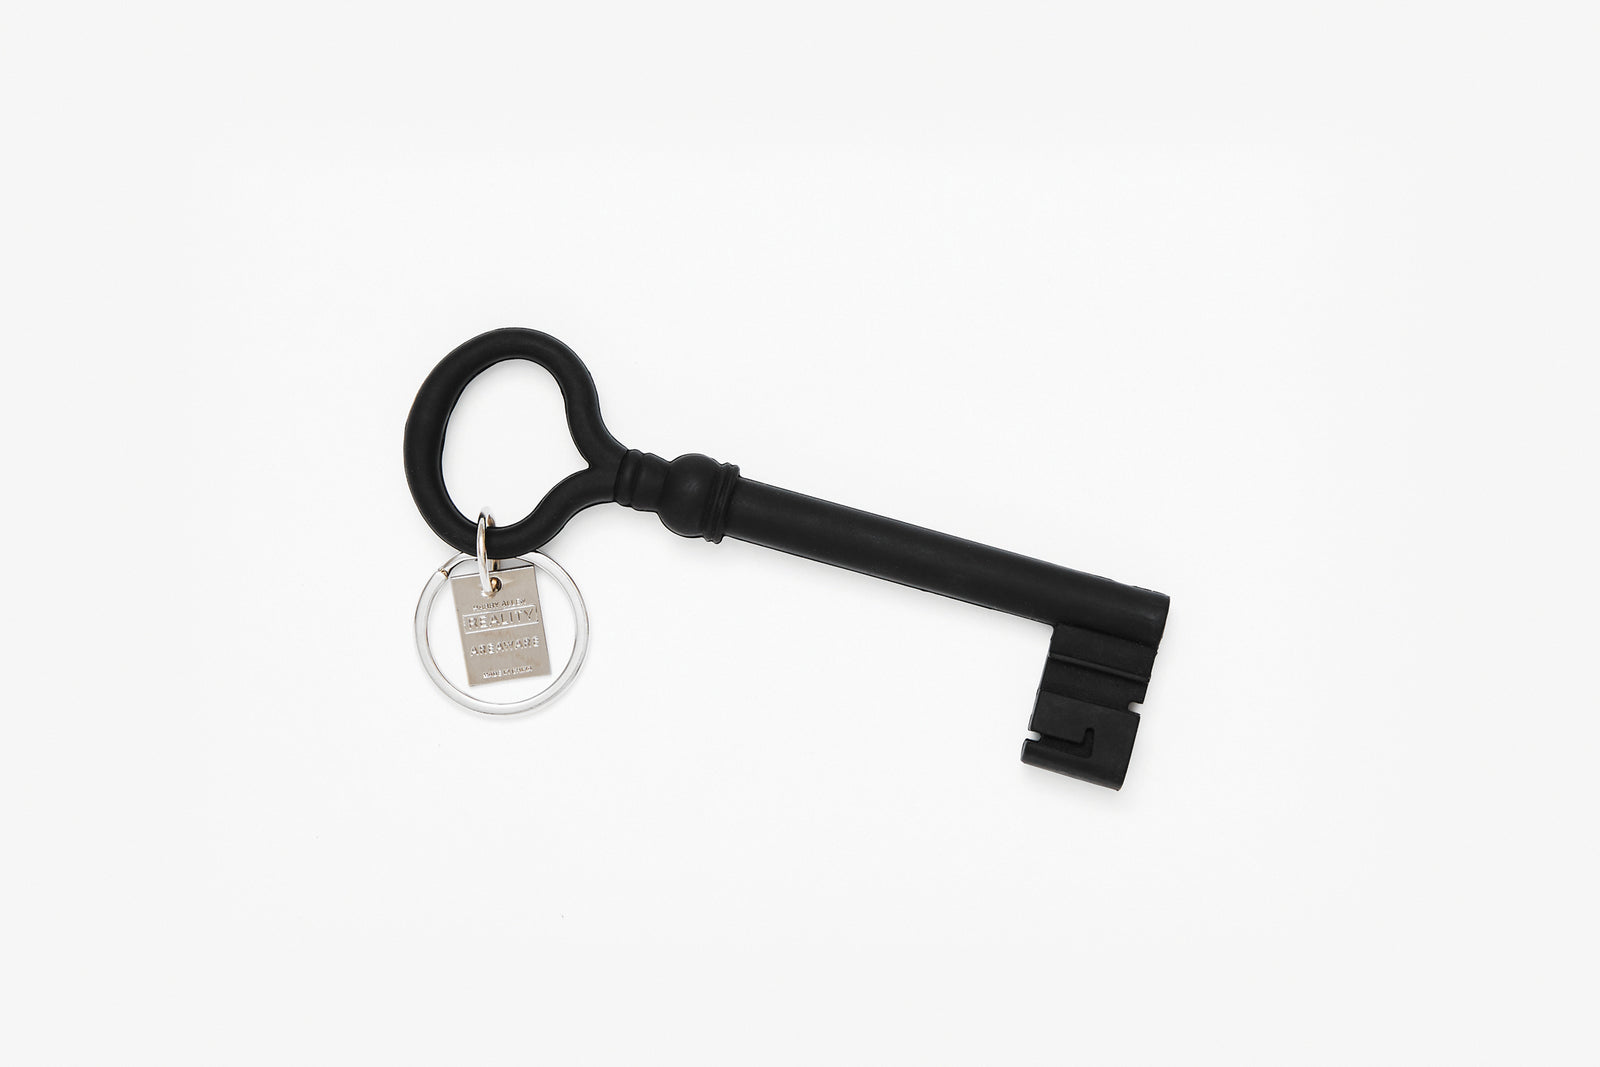 Reality Key Keychain - Black